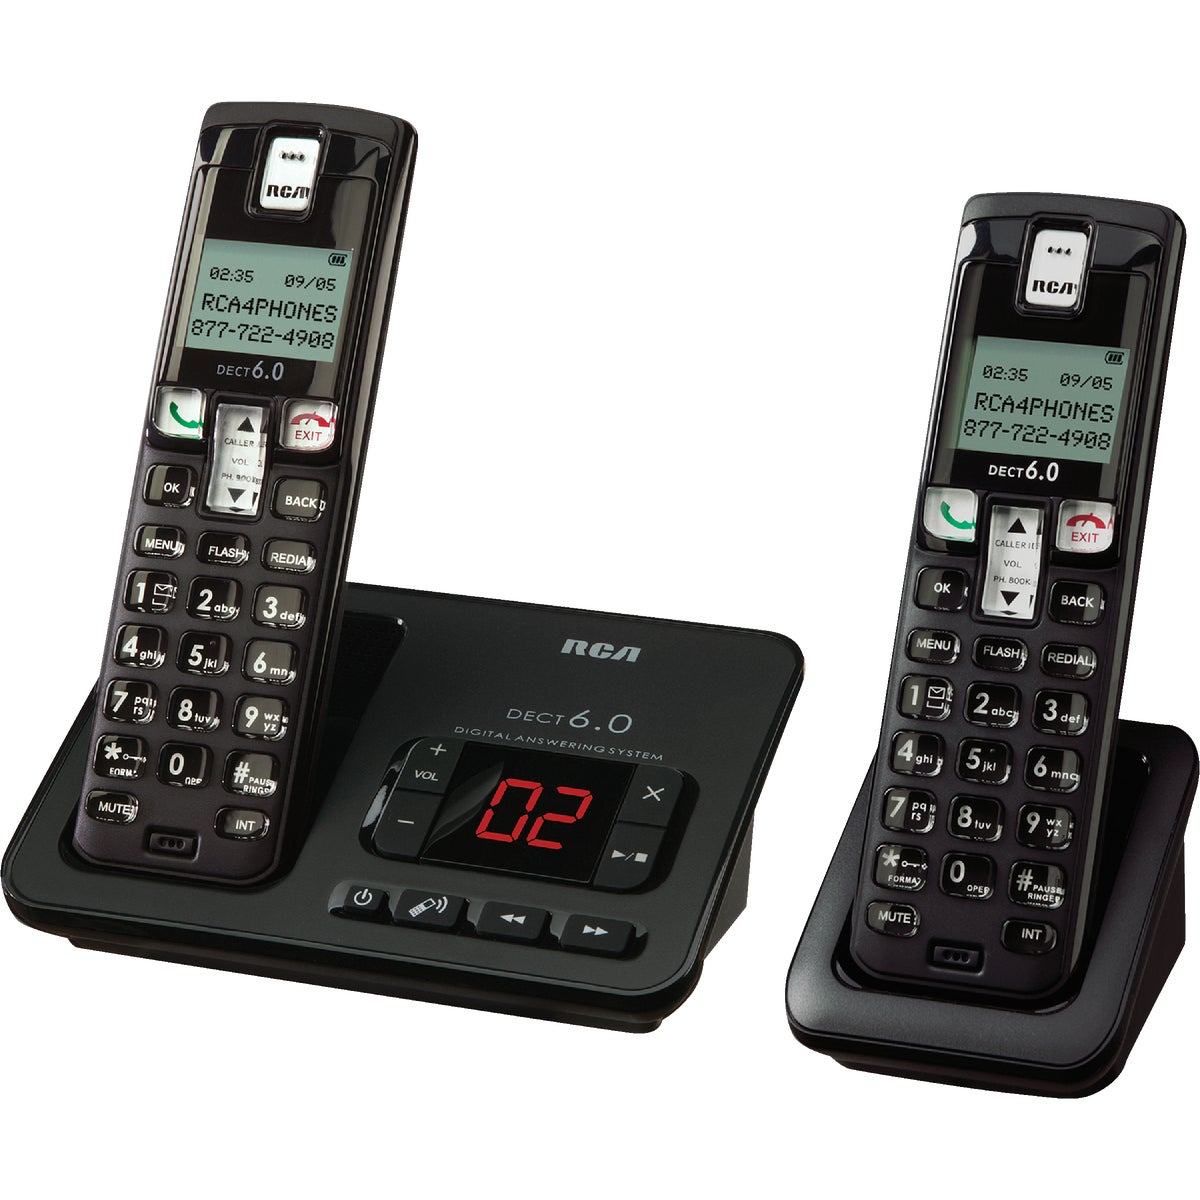 2SET CRDLS PHONE W/ANSWR - CS6629-2 by Imperial Sales